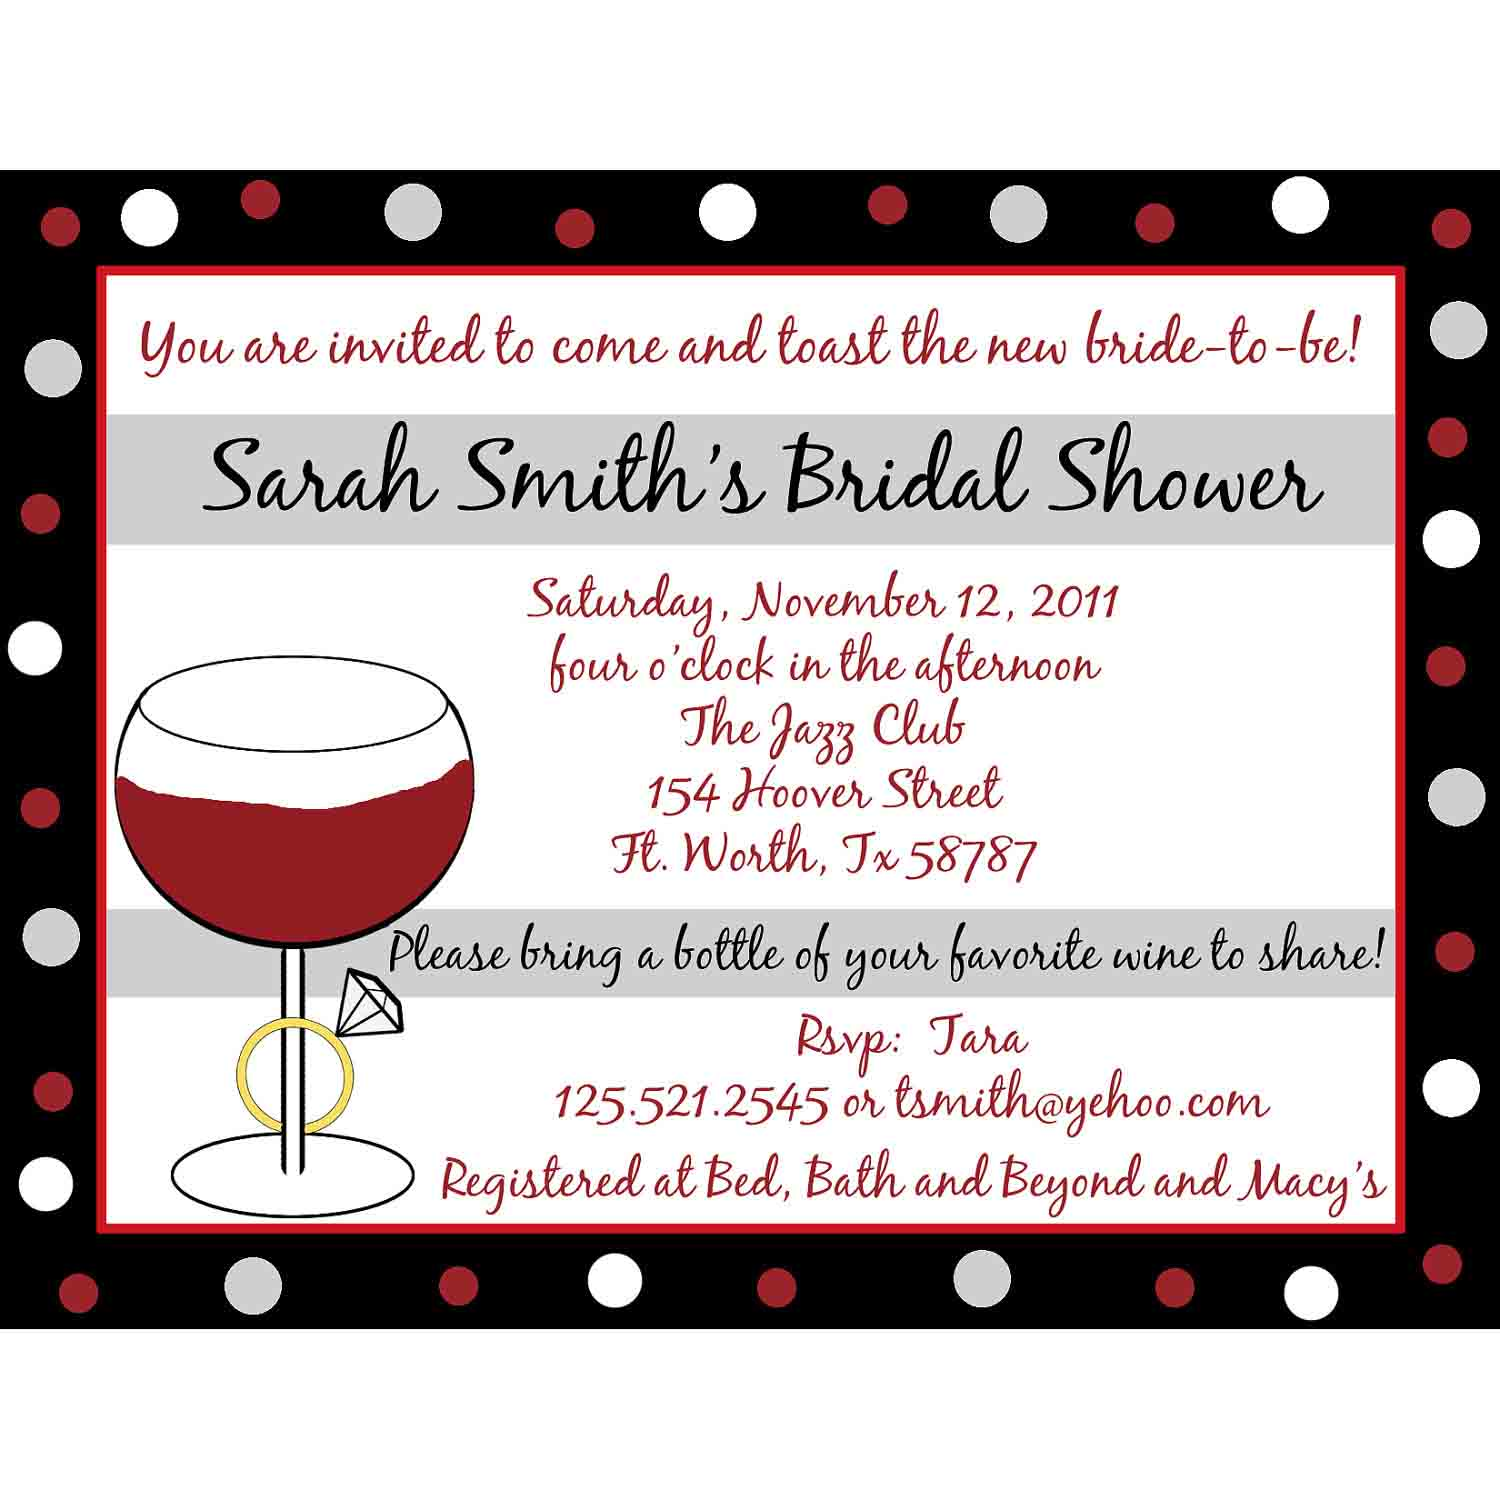 Wedding Shower Invitation Card